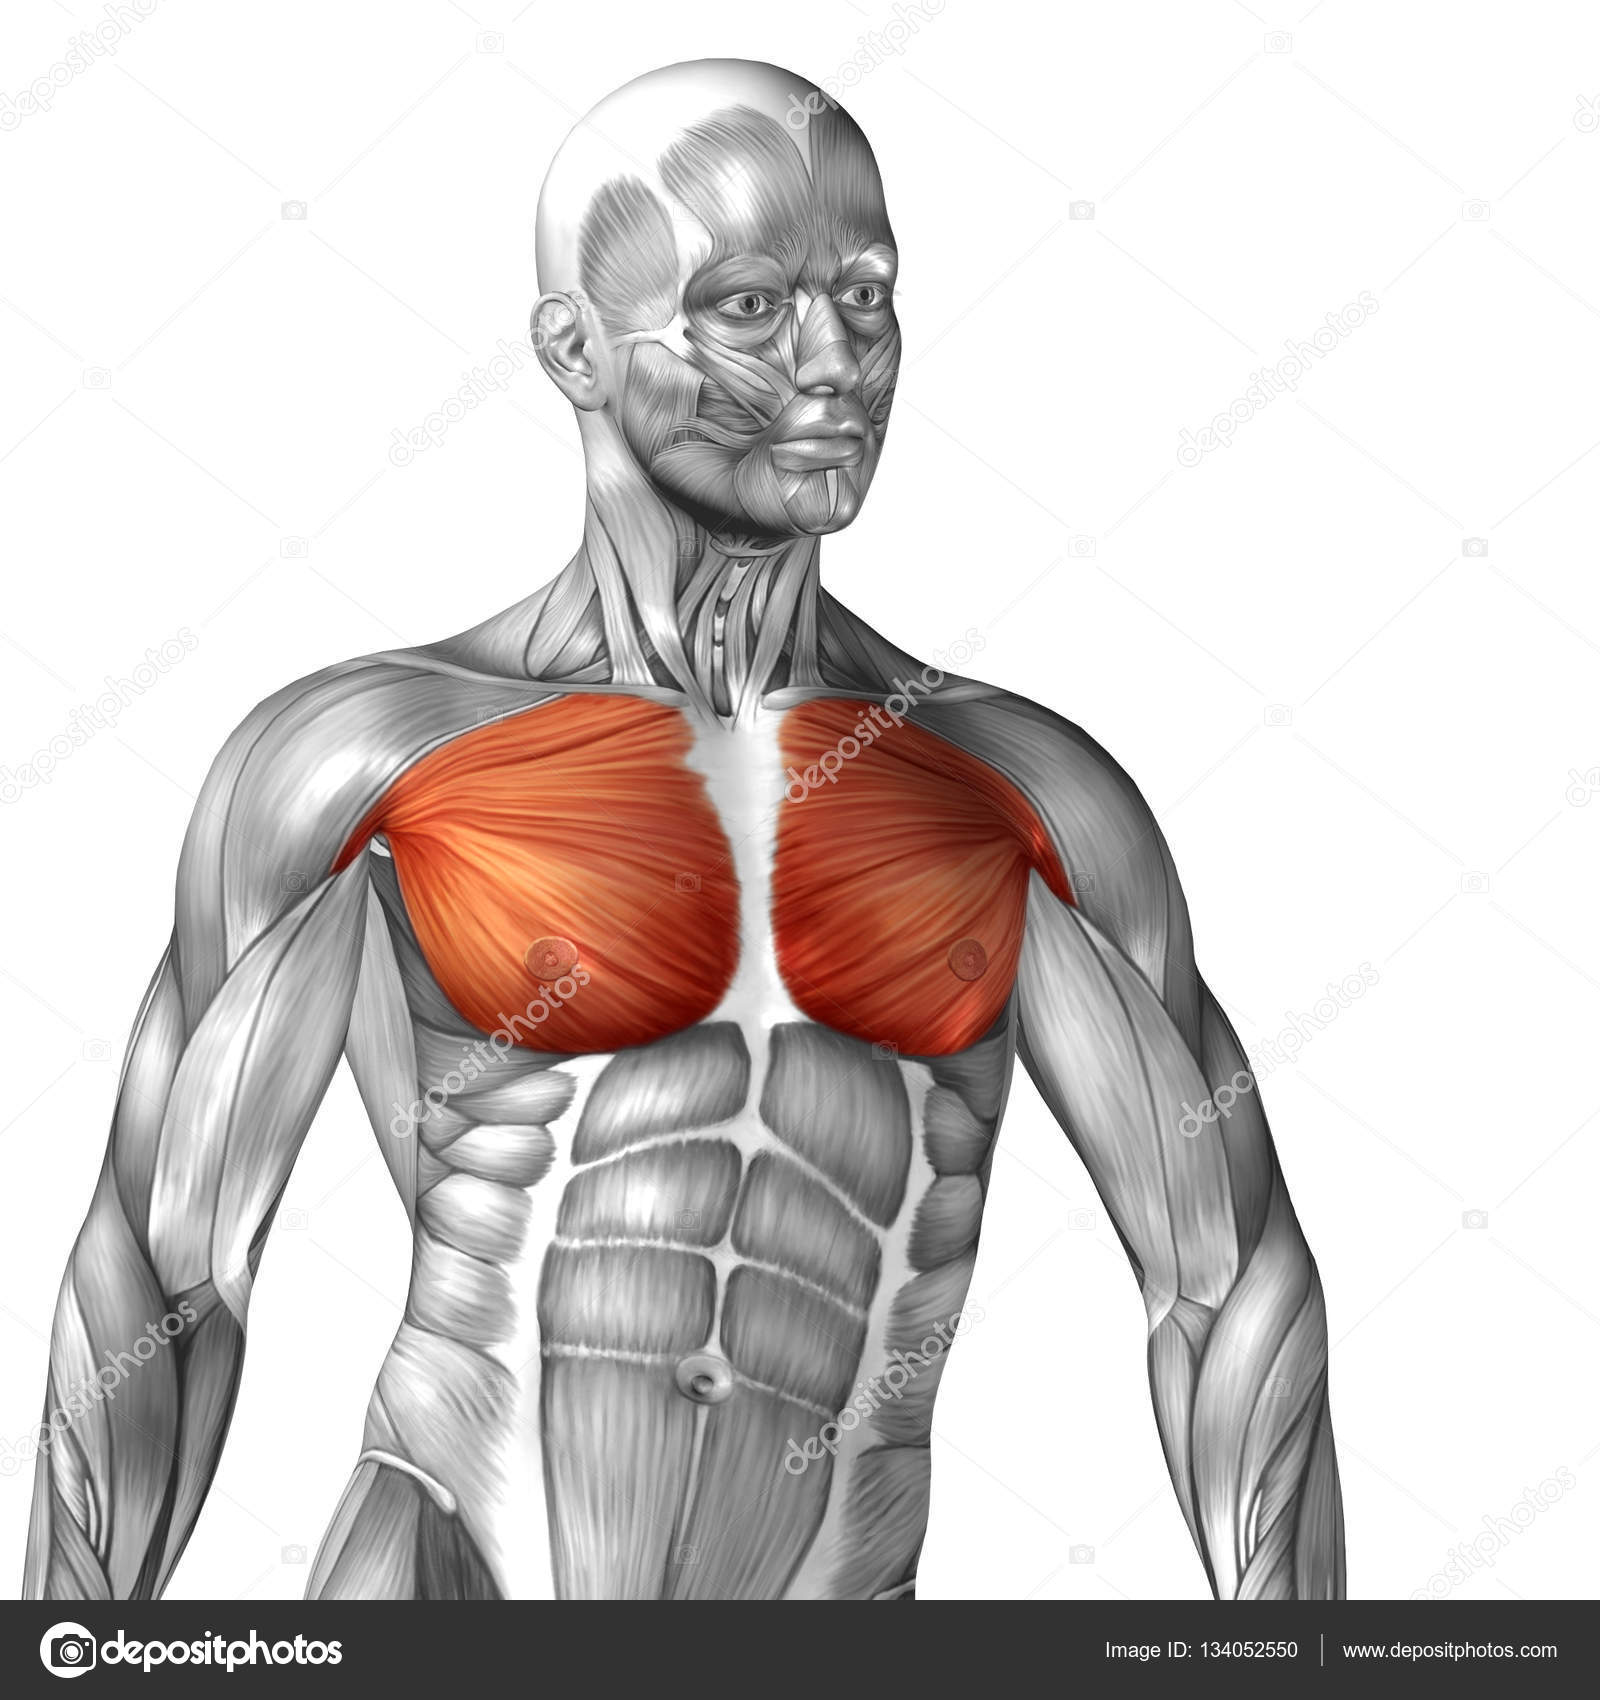 Human Chest Muscles Stock Photo Design36 134052550